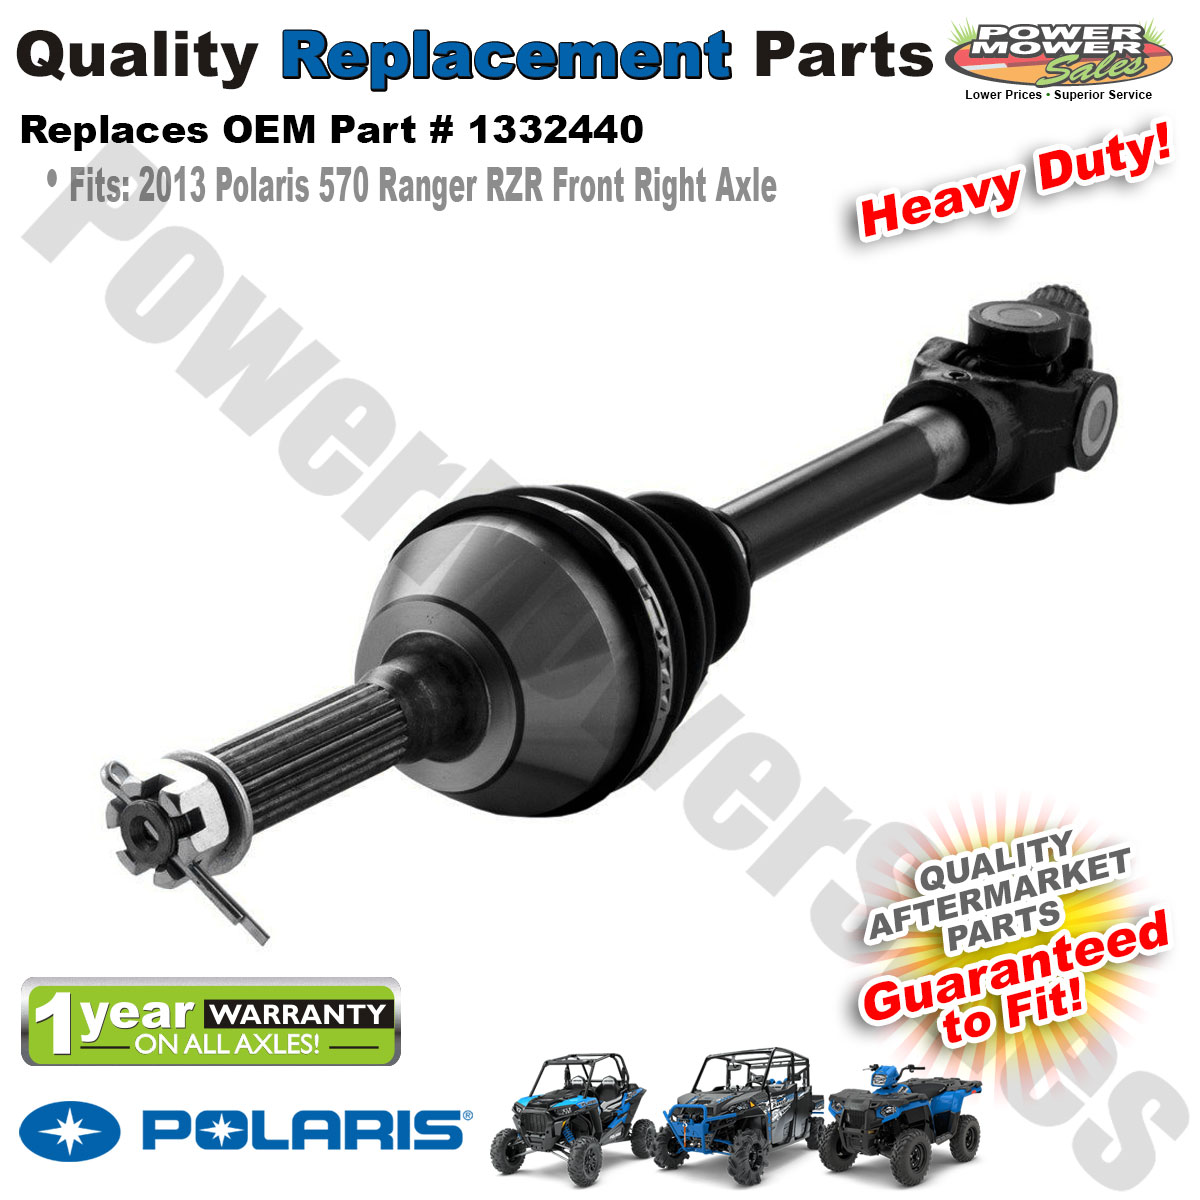 Details about Heavy Duty Front Right Axle for 2013 Polaris 570 Sportsman  RZR Replaces: 1332440